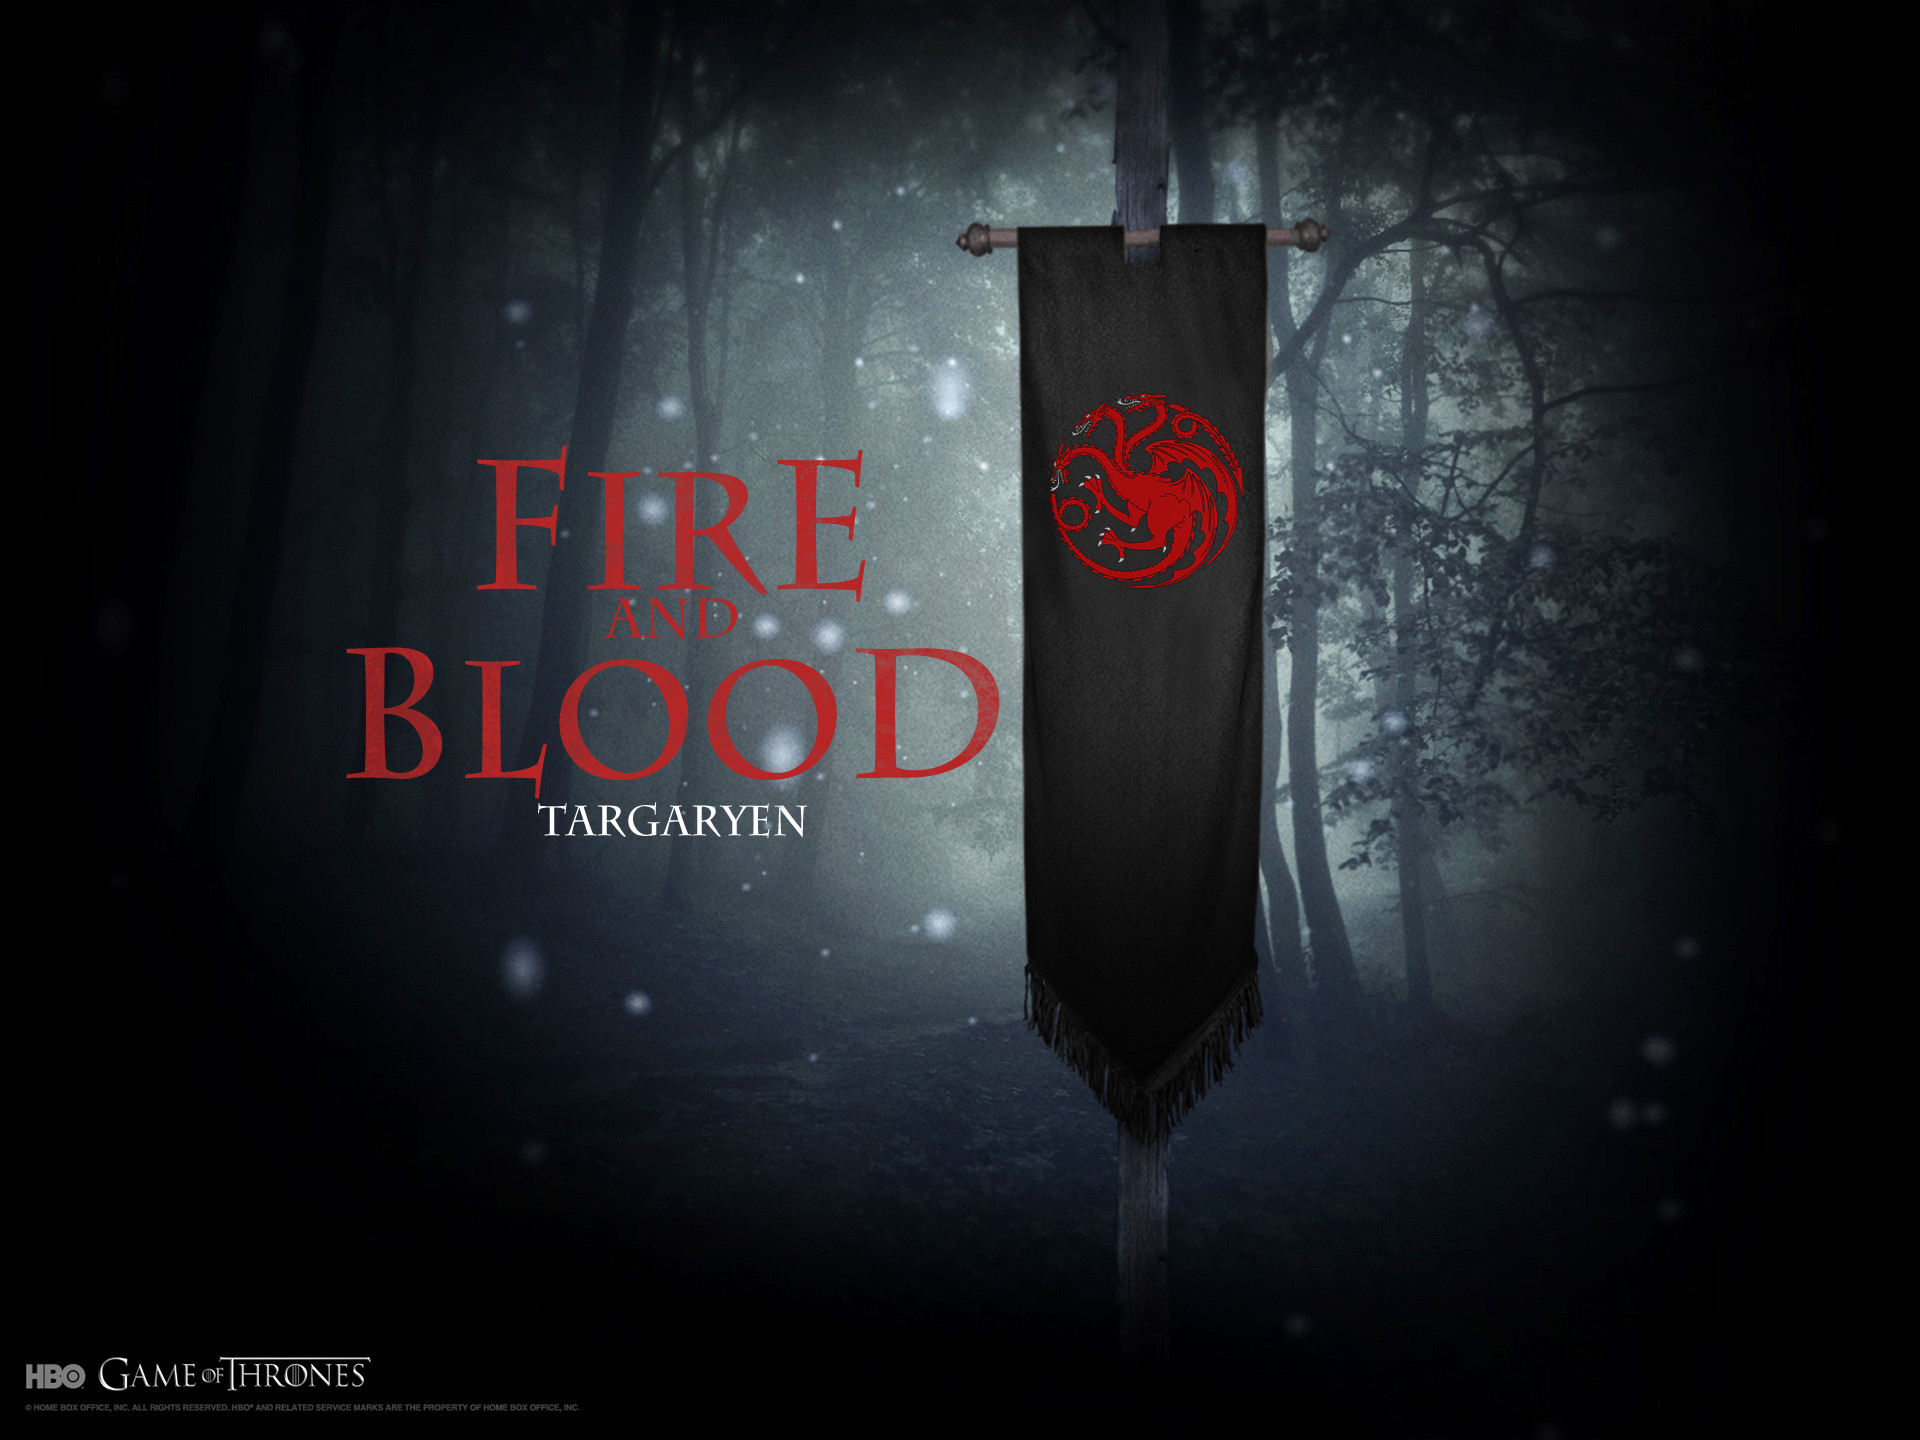 Game of Thrones,A Song Of Ice And Fire game of thrones a song of ice and  fire tv series banner george r r martin house tyrell – Games Wallpaper –  Desktop …